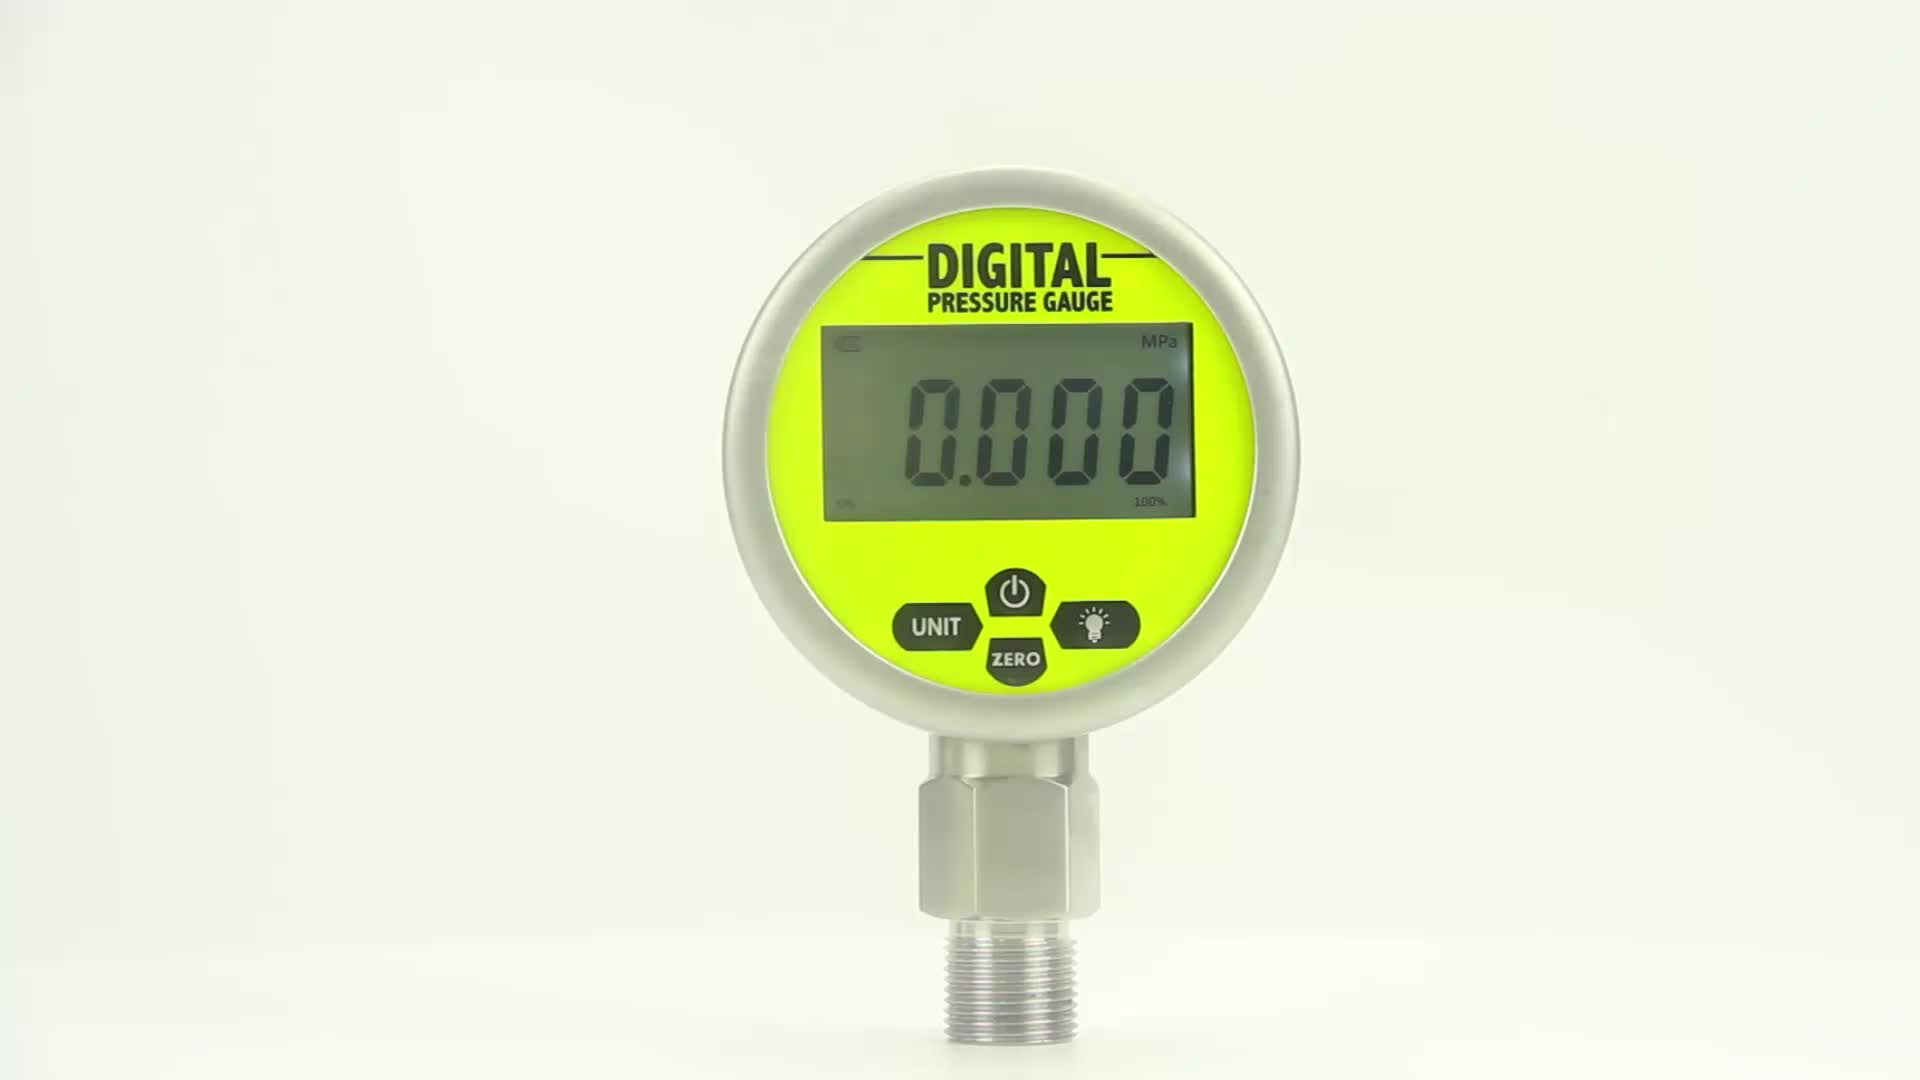 MD-S280 Hot-sell high precision digital pressure manometer